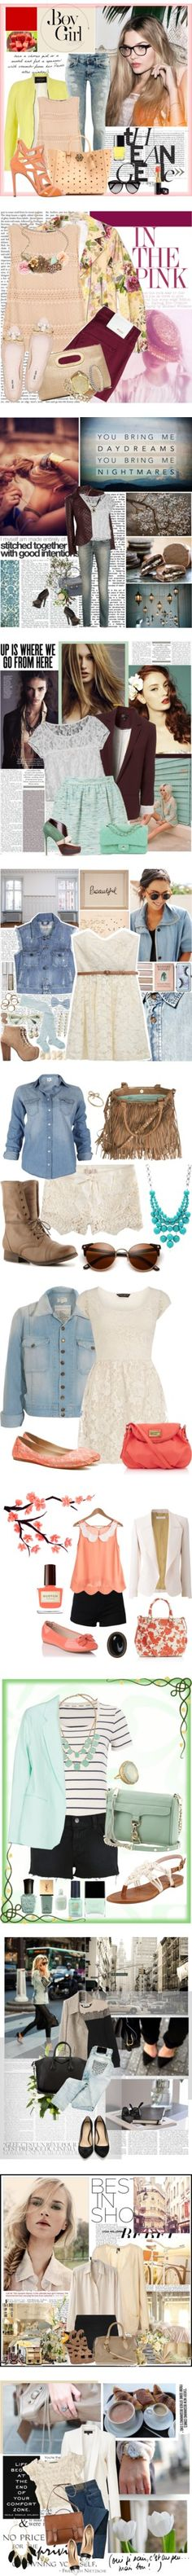 """summer 3"" by jankaherman ❤ liked on Polyvore"